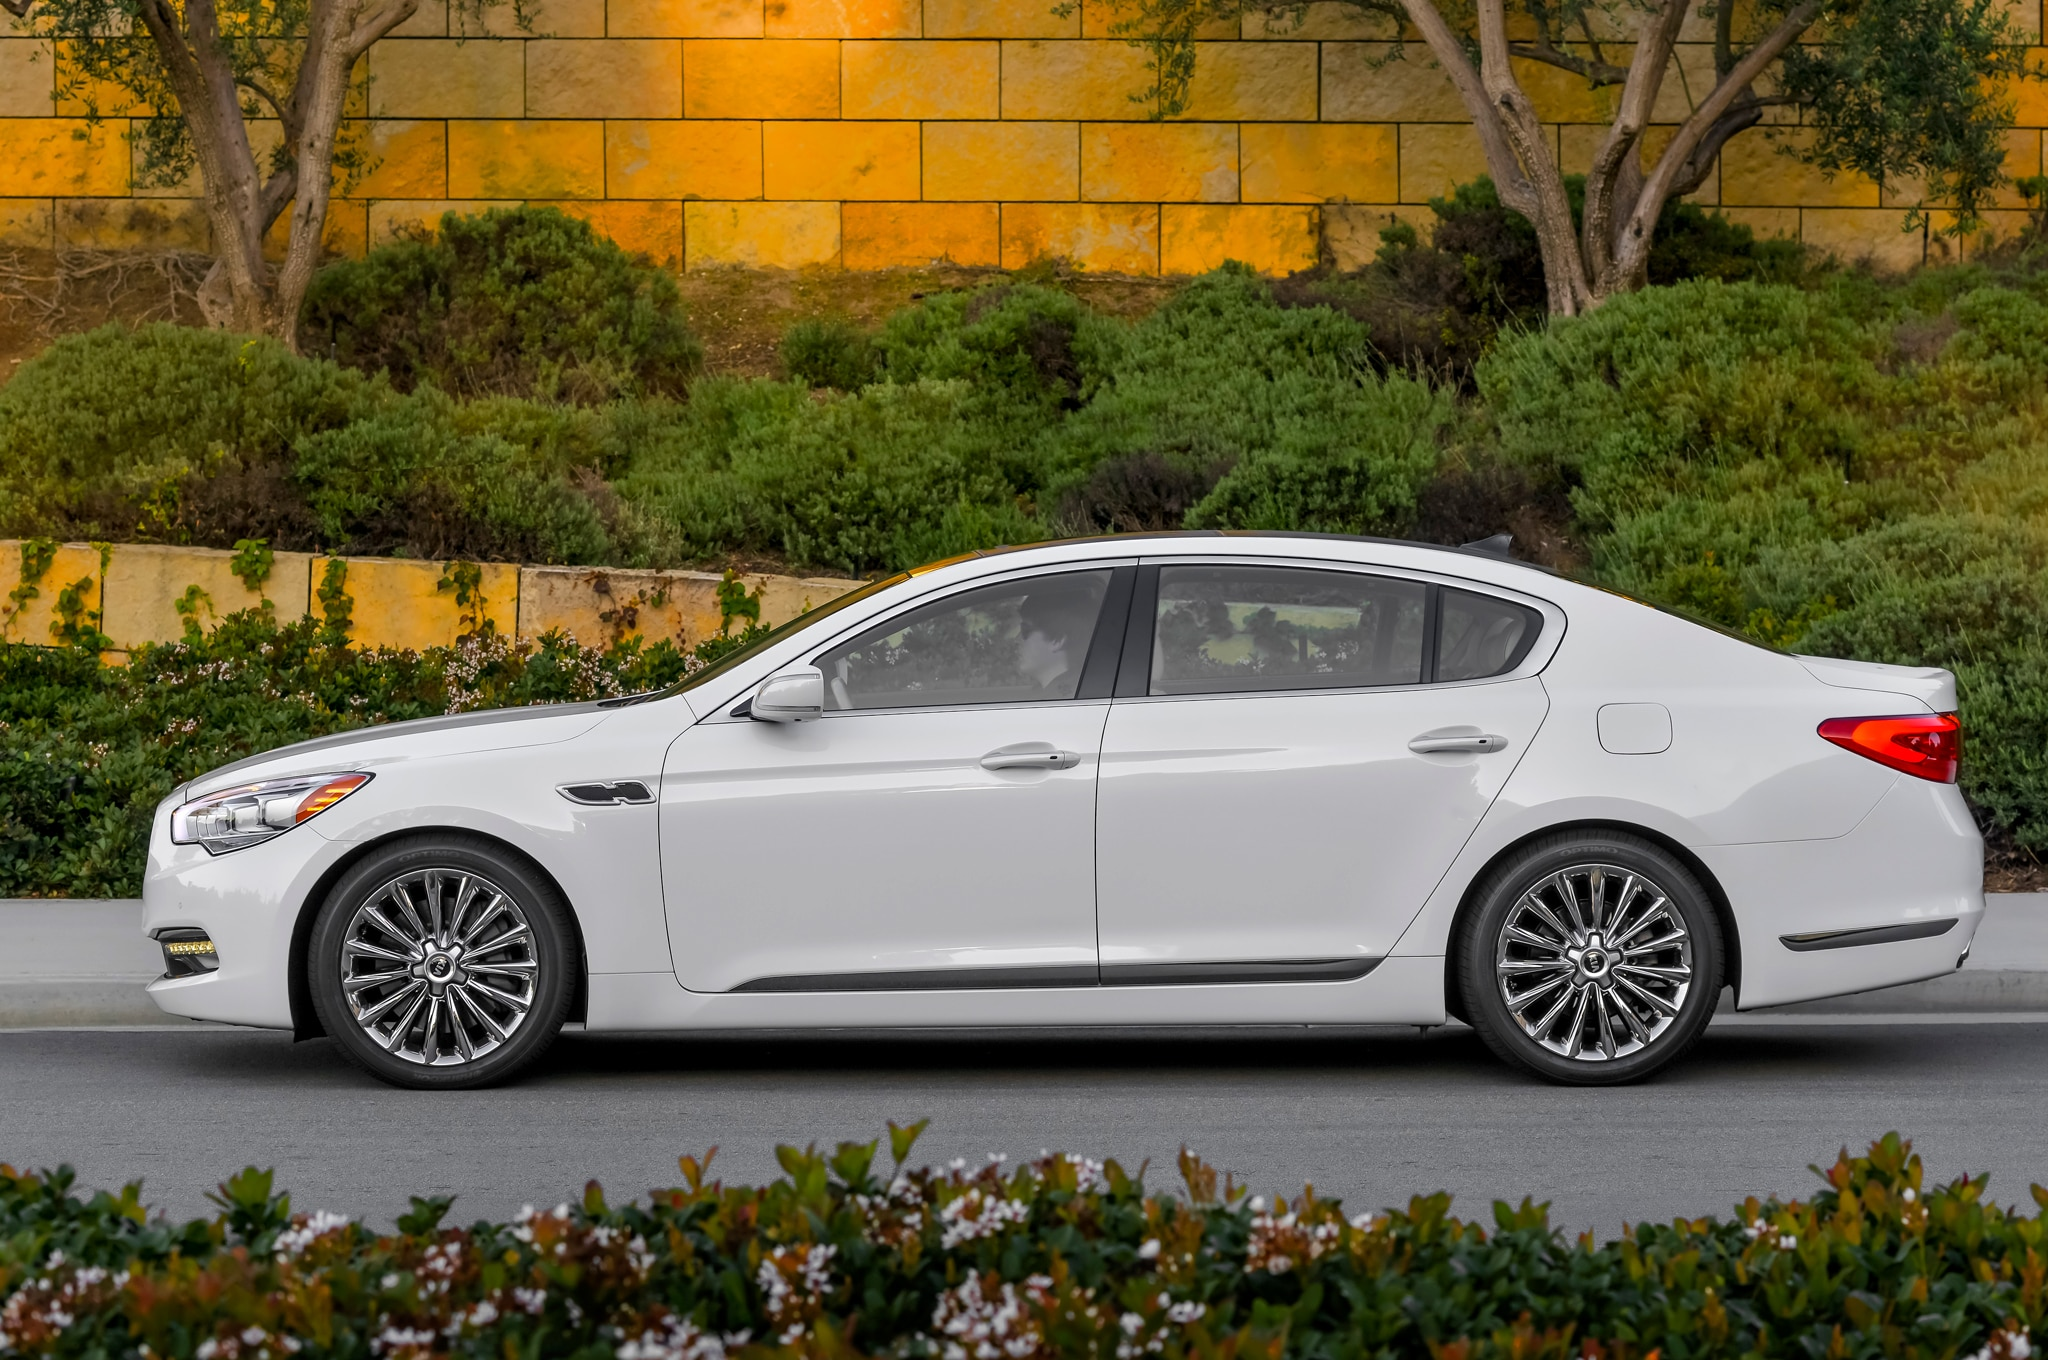 2015 Kia K900 Fuel Economy Rated at 27 MPG - Automobile ...